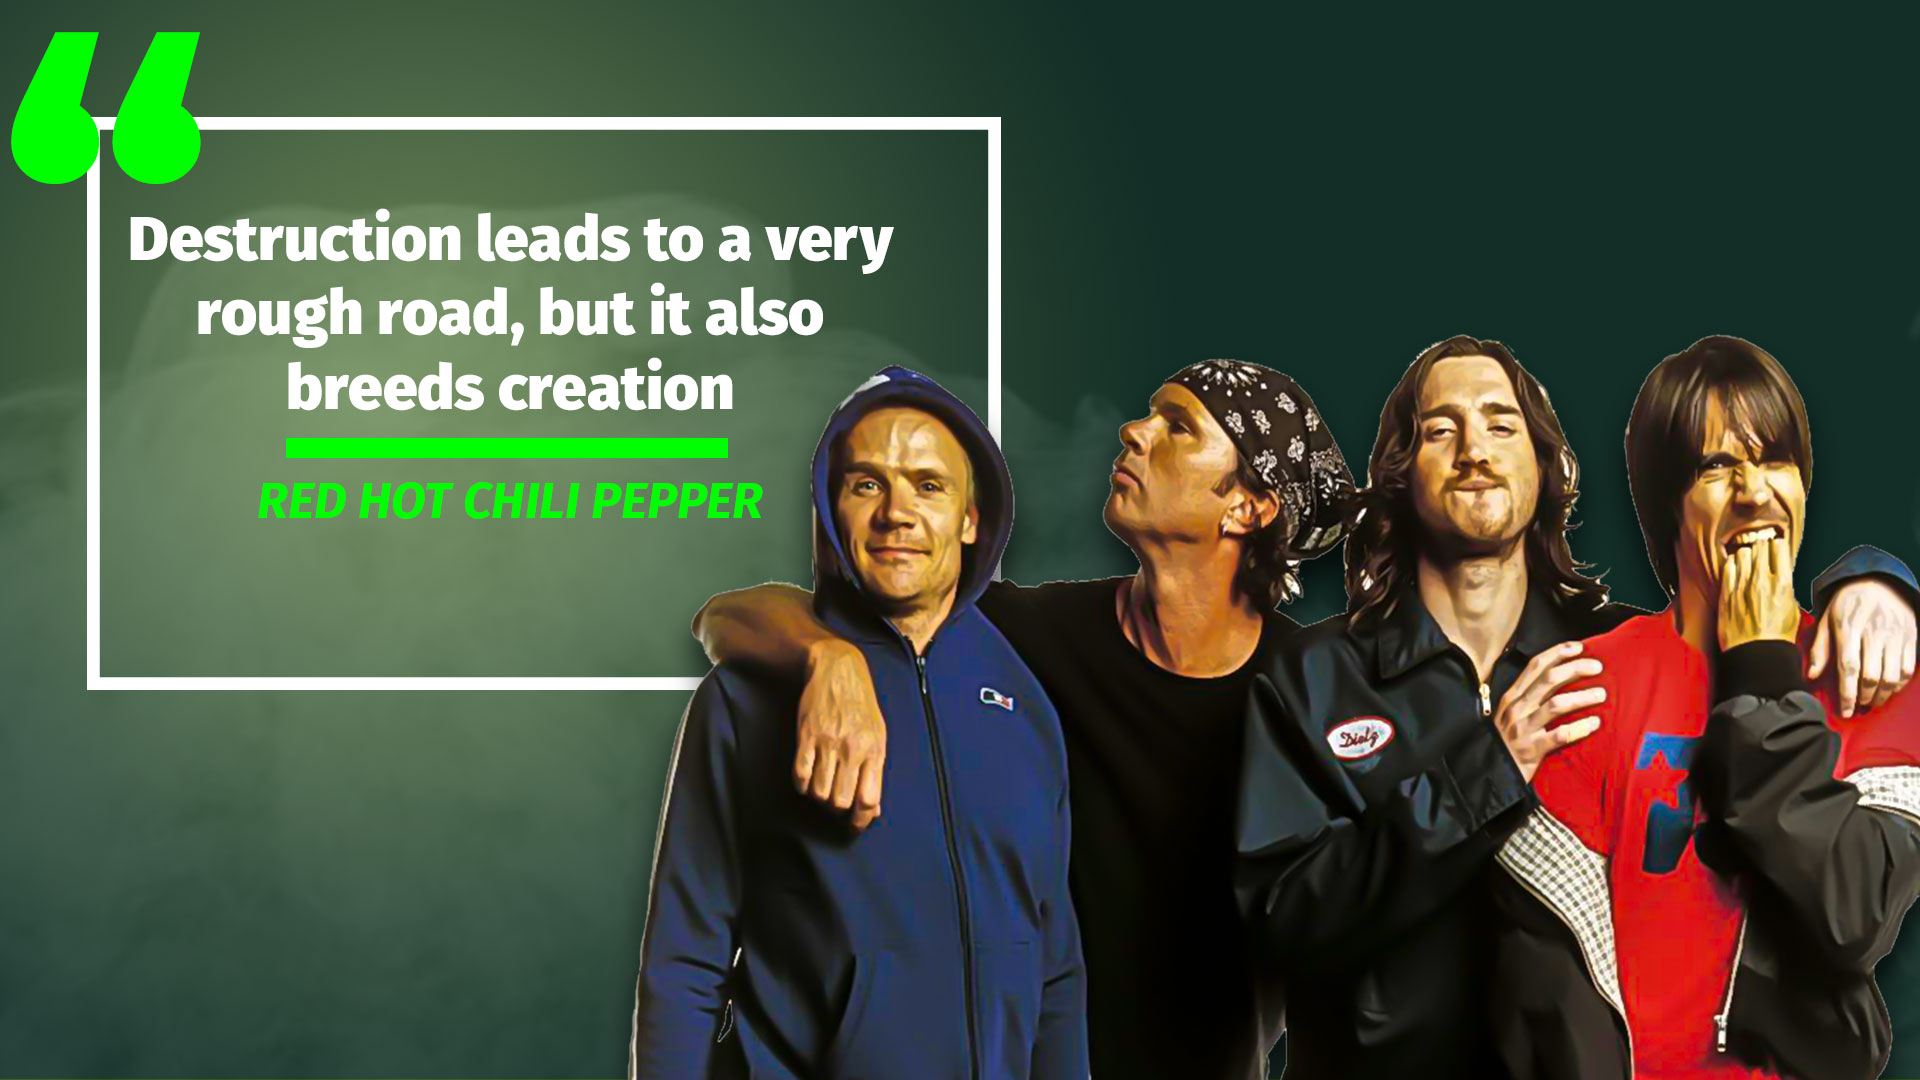 Red Hot Chili Peppers quote 1